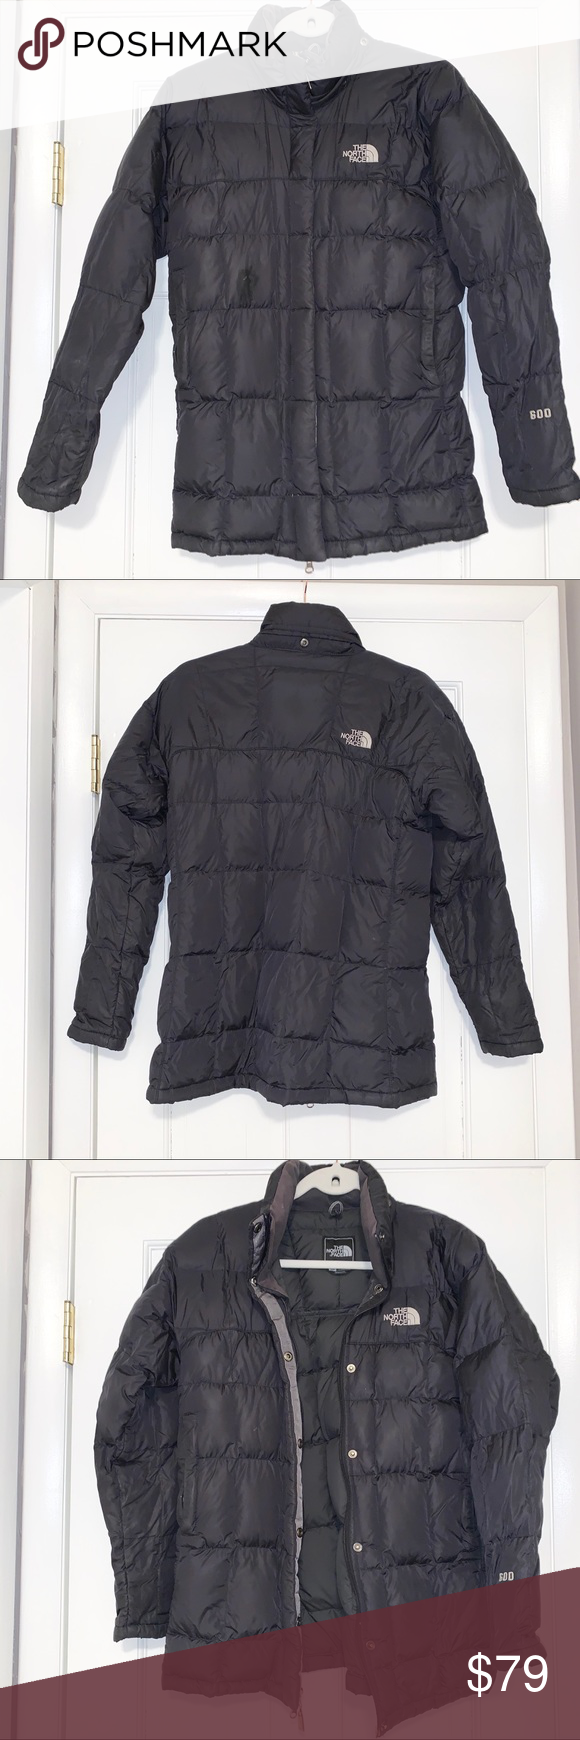 Hp The North Face 600 Puffer Black Coat Jacket Fashion Black Puffer Coat Clothes Design [ 1740 x 580 Pixel ]